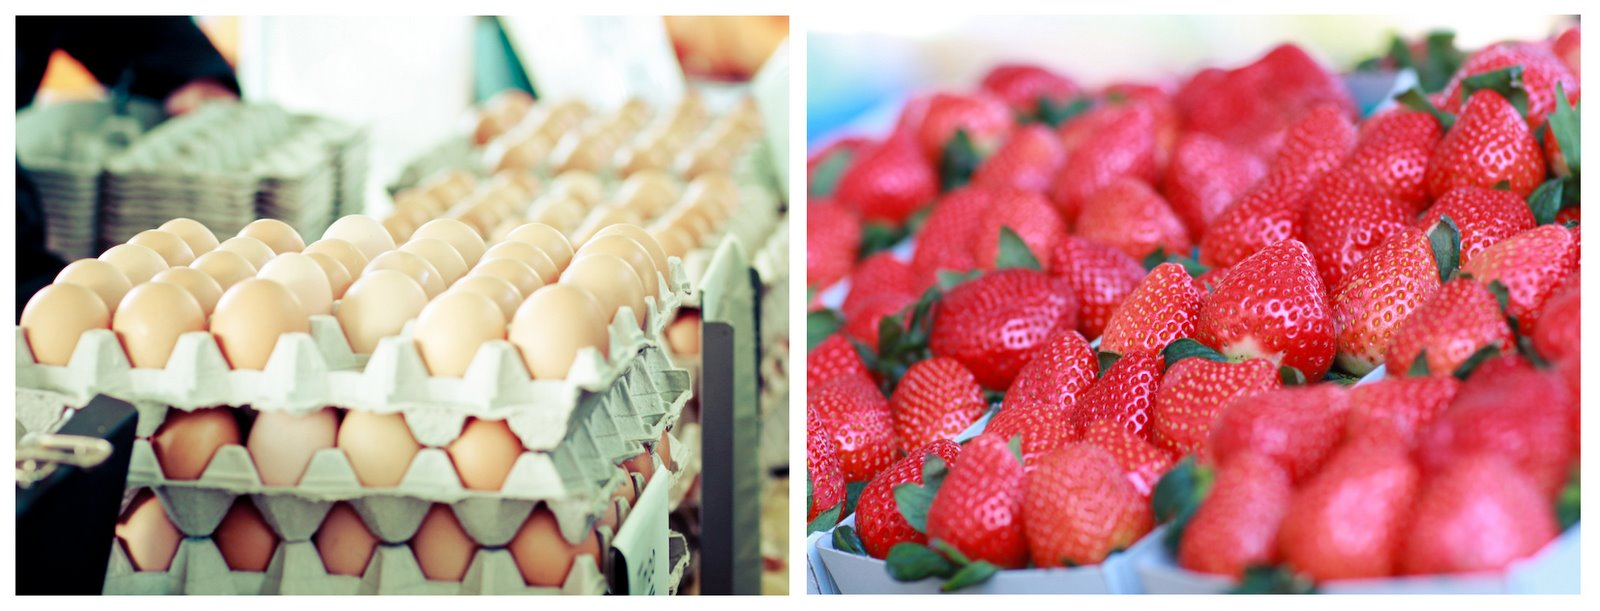 Davis Farmers Market Strawberries Eggs